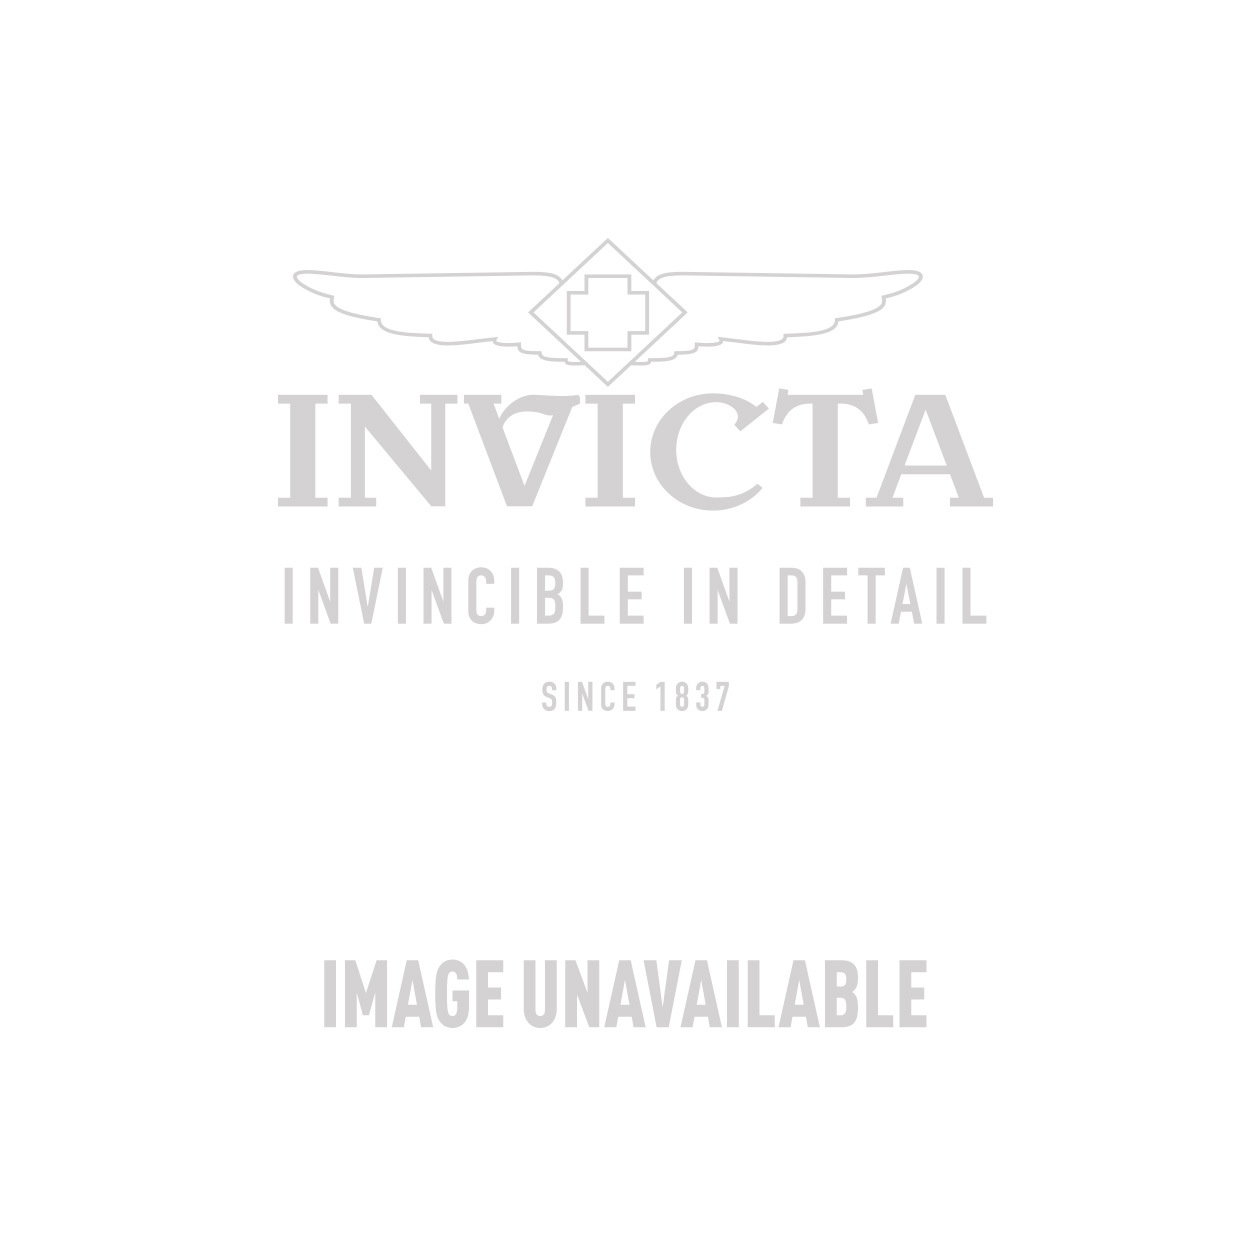 Invicta Corduba Swiss Movement Quartz Watch - Stainless Steel case Stainless Steel band - Model 90203